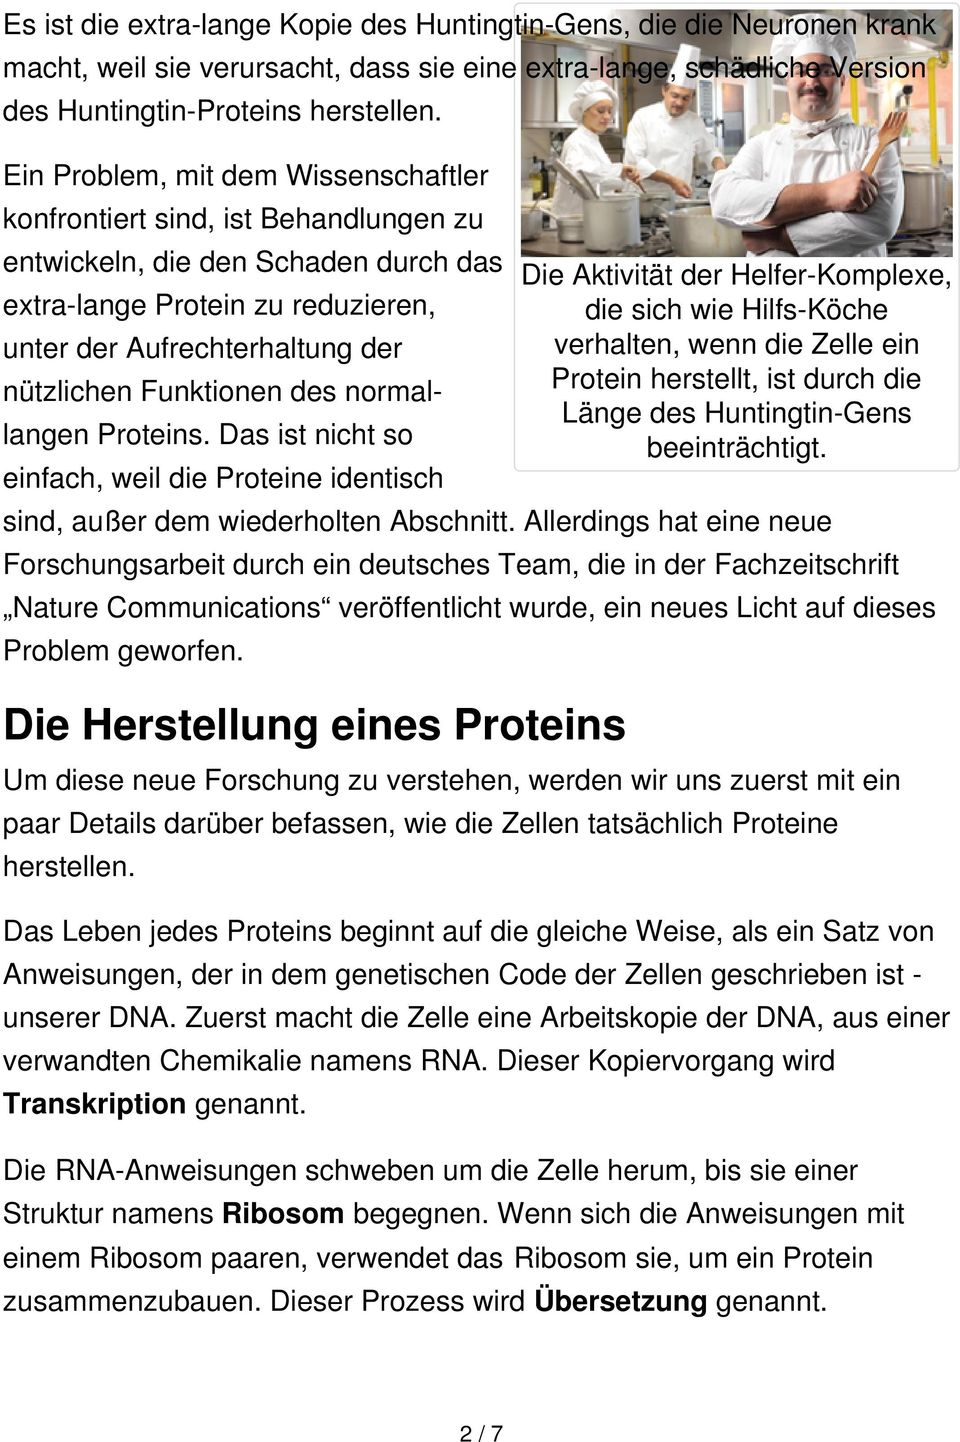 Funktionen des normallangen Proteins.